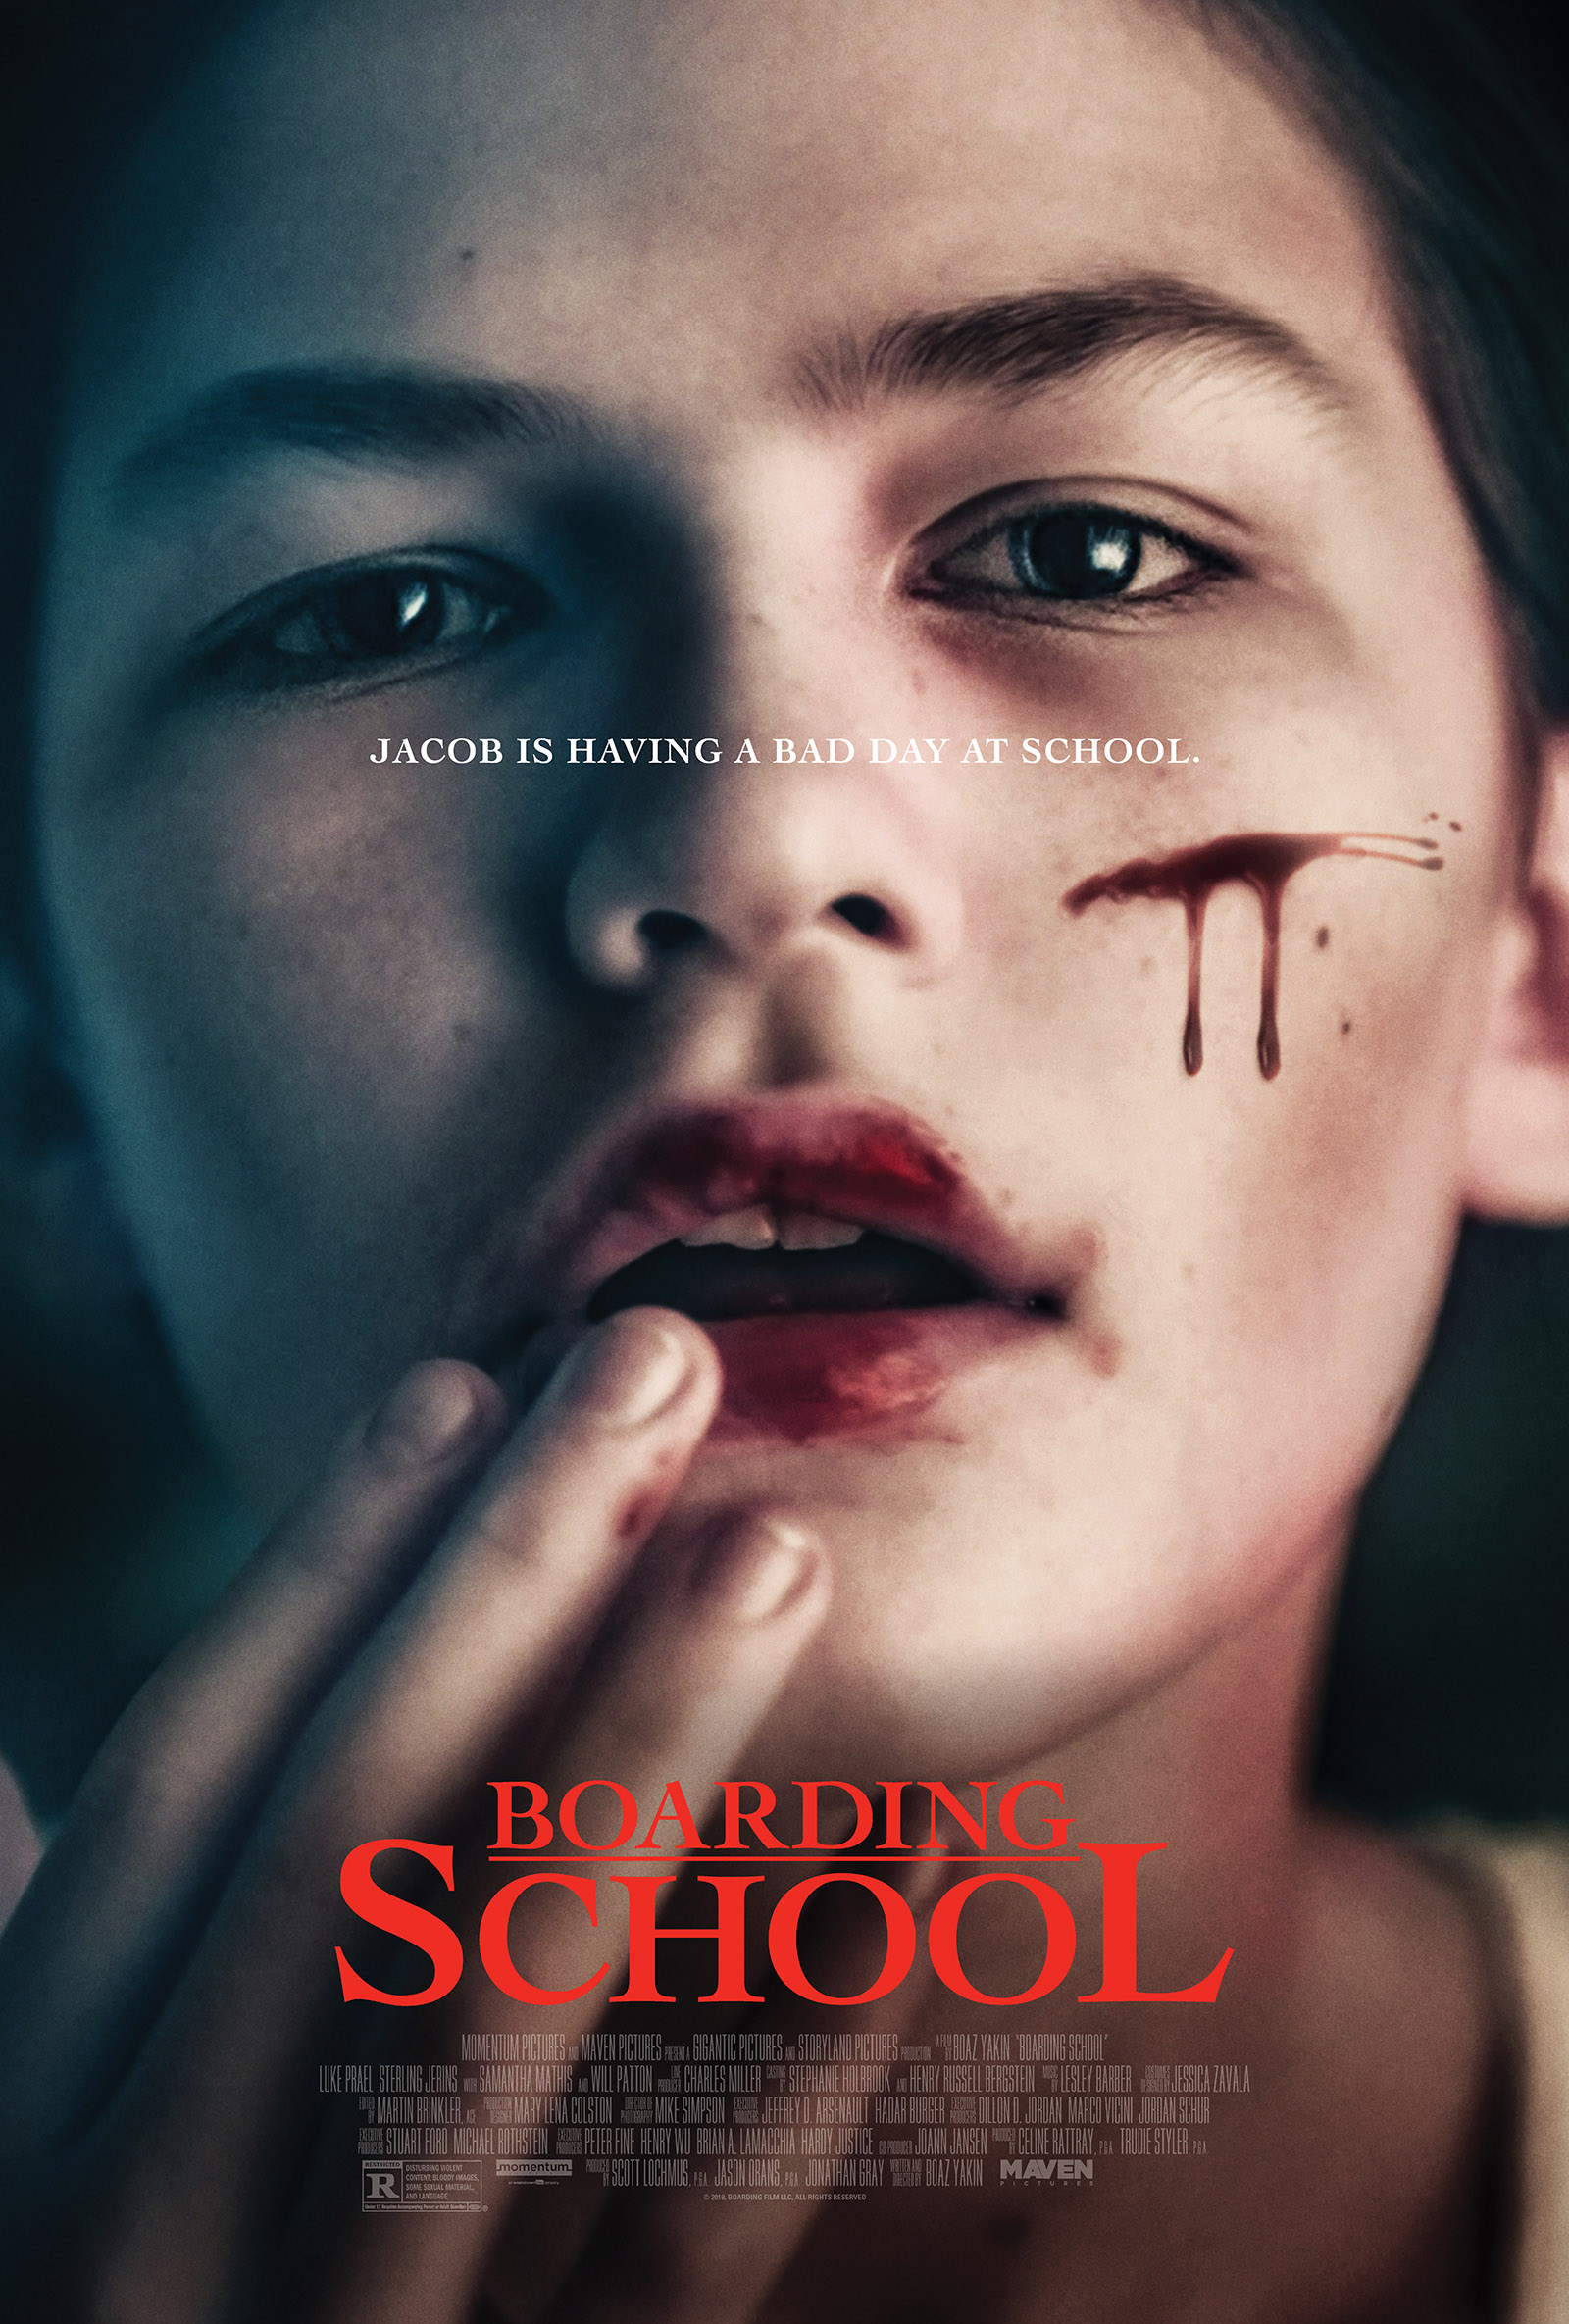 Movie poster with a pale young boy with blood on his lips and cheek, holding his fingers to his lips with his mouth open. The poster text reads'Jacob is having a bad day at school.', with the movie title appearing in red below his face.